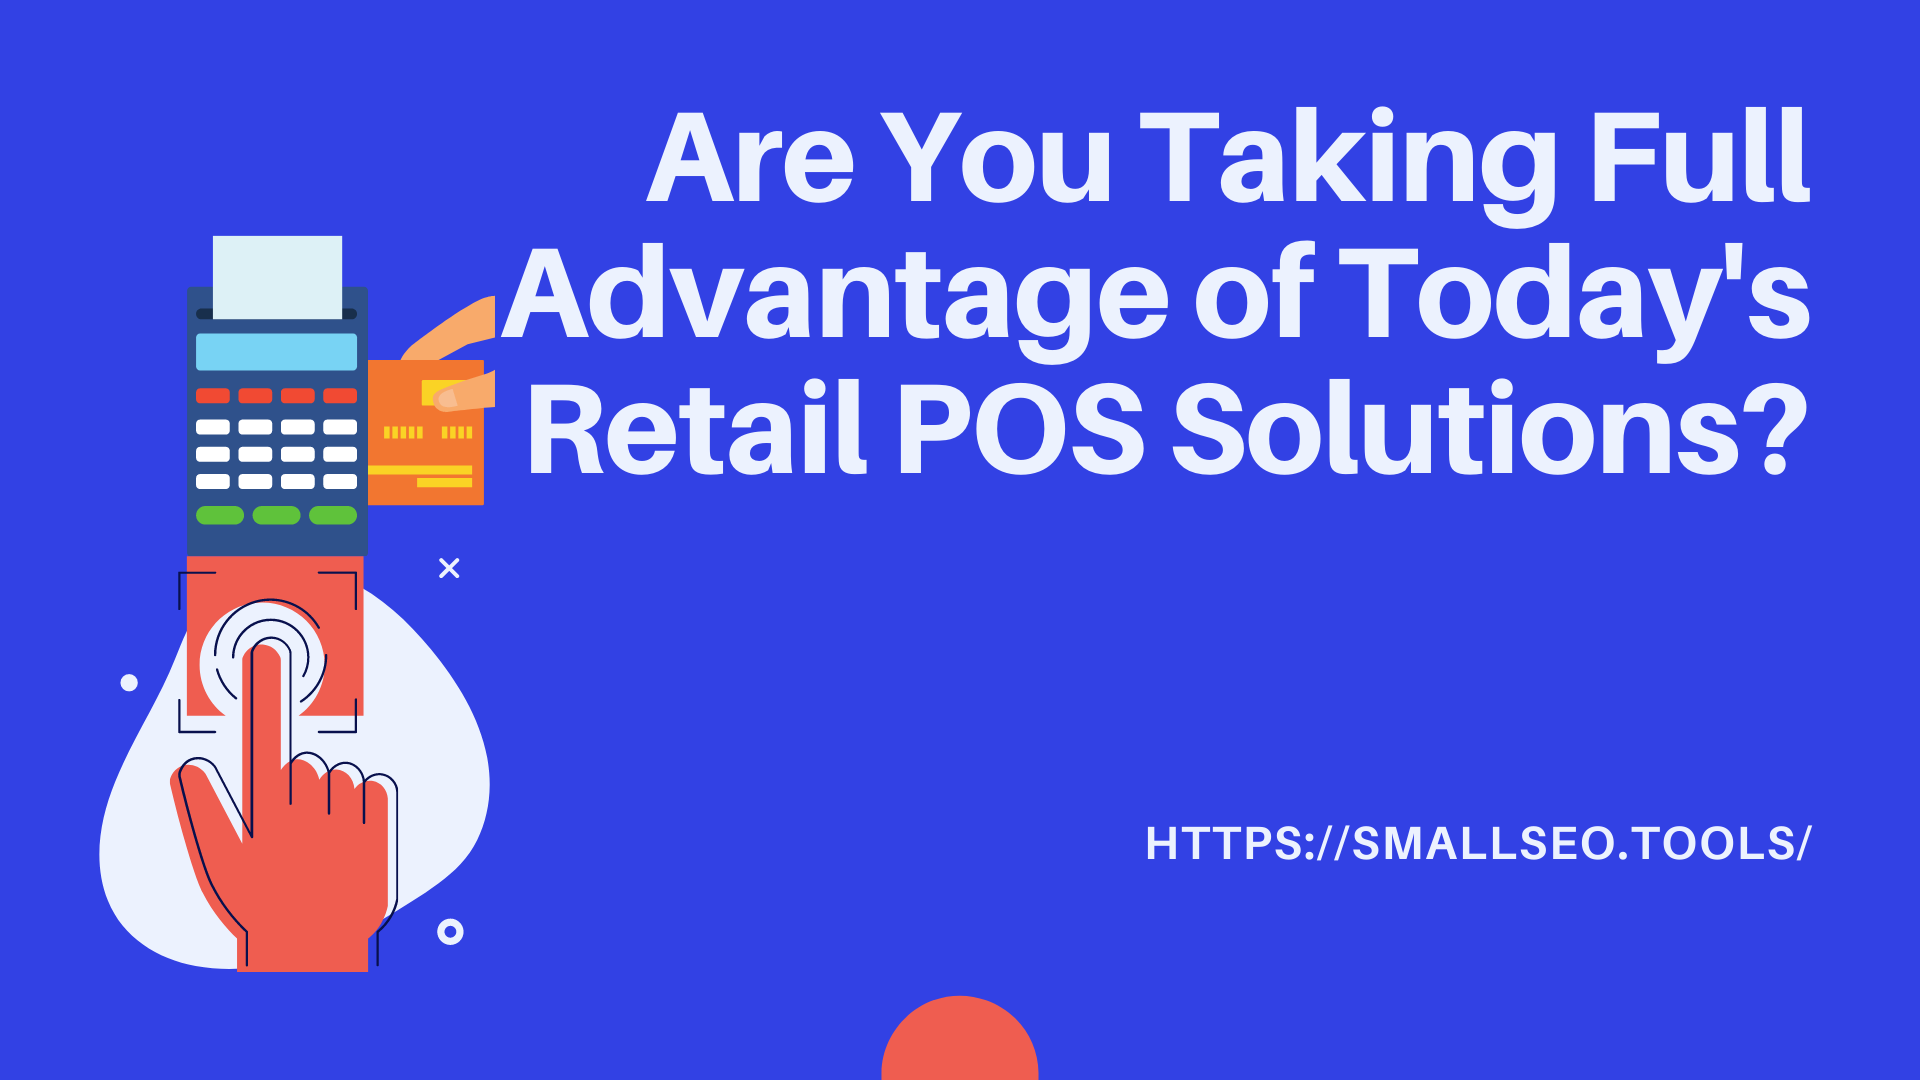 Retail POS Solutions